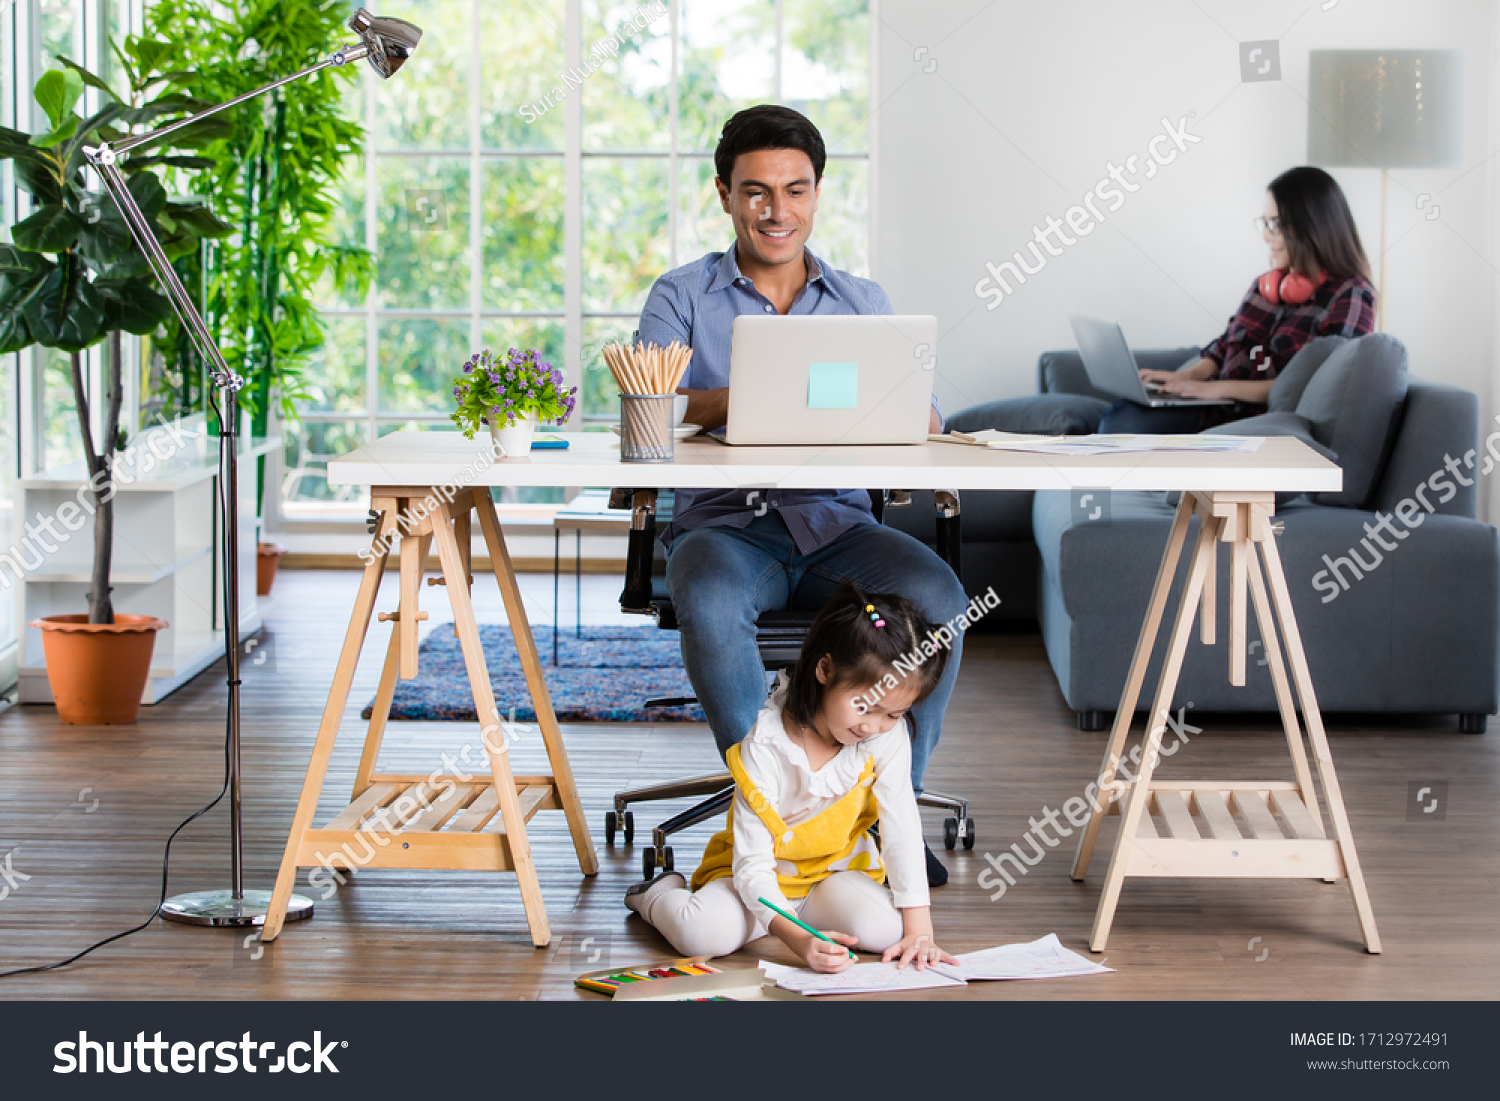 Mixed race family sharing time in living room. Caucasian father using notebook computer to work and half-Thai playing and painting under desk while Asian mother with laptop working her job on sofa. #1712972491